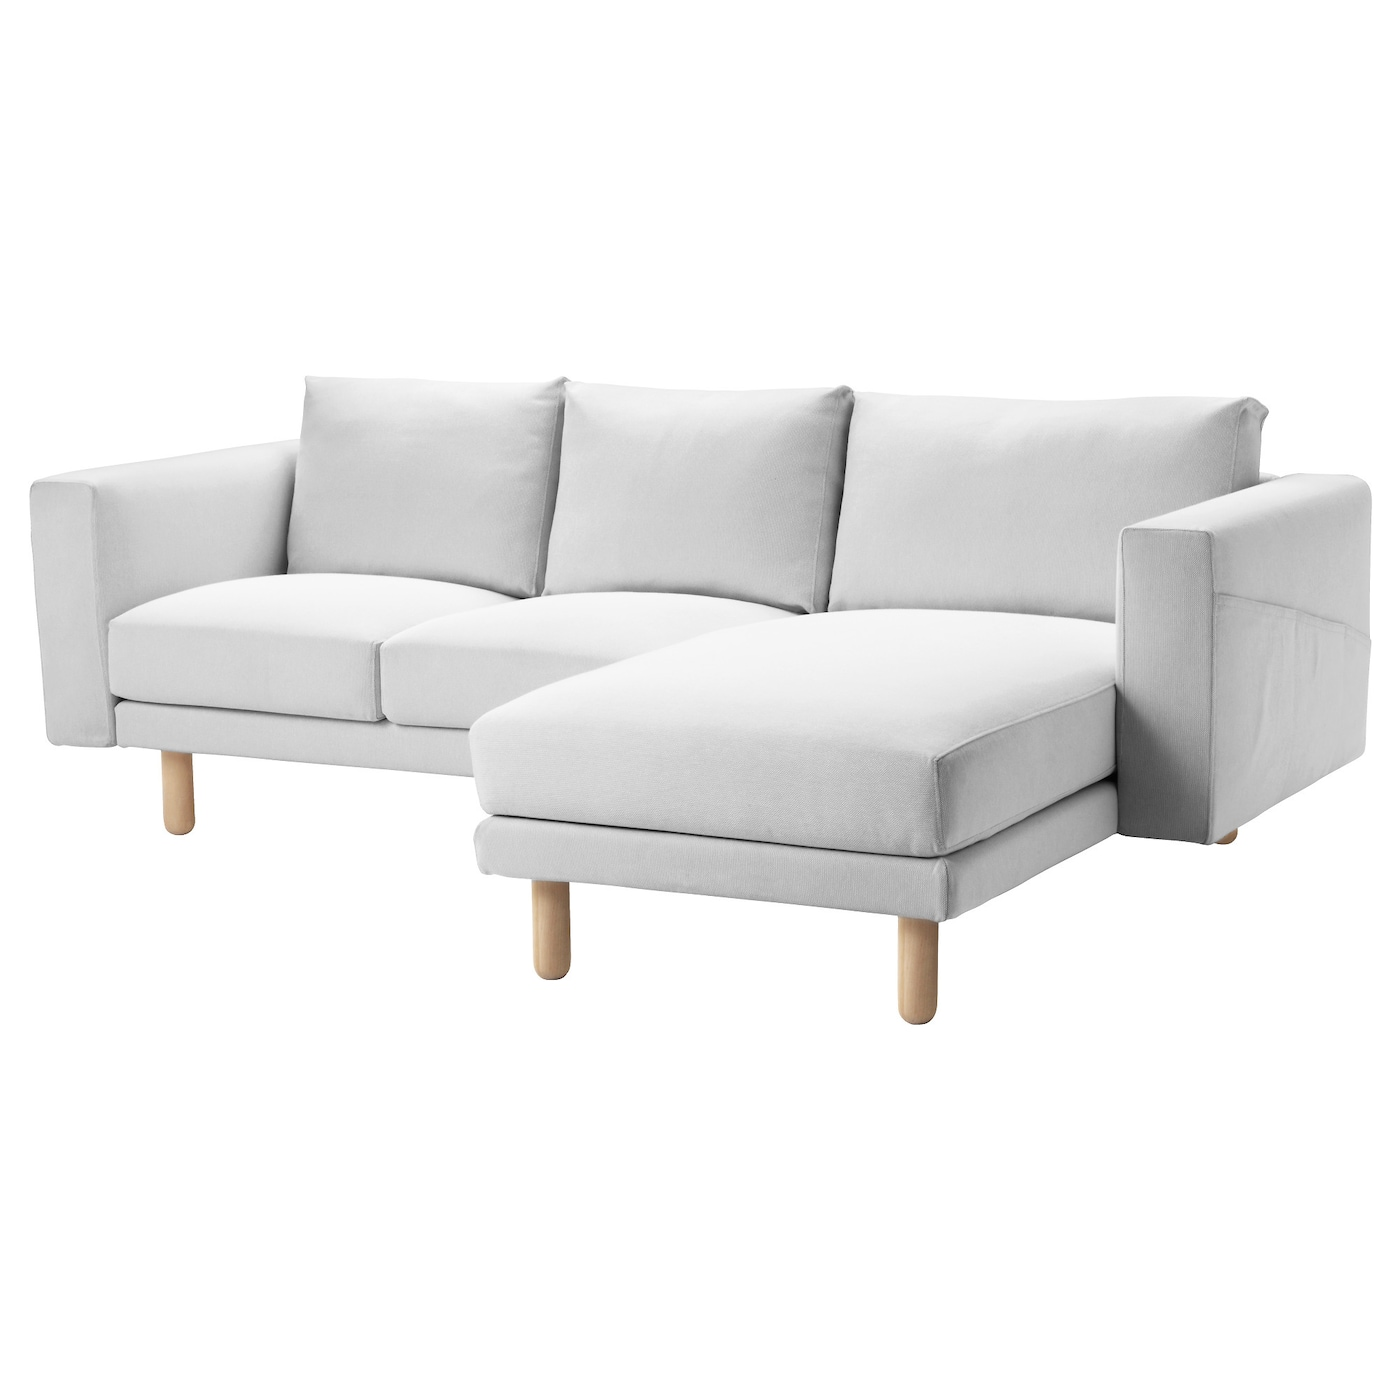 IKEA NORSBORG 3 Seat Sofa 10 Year Guarantee. Read About The Terms In The